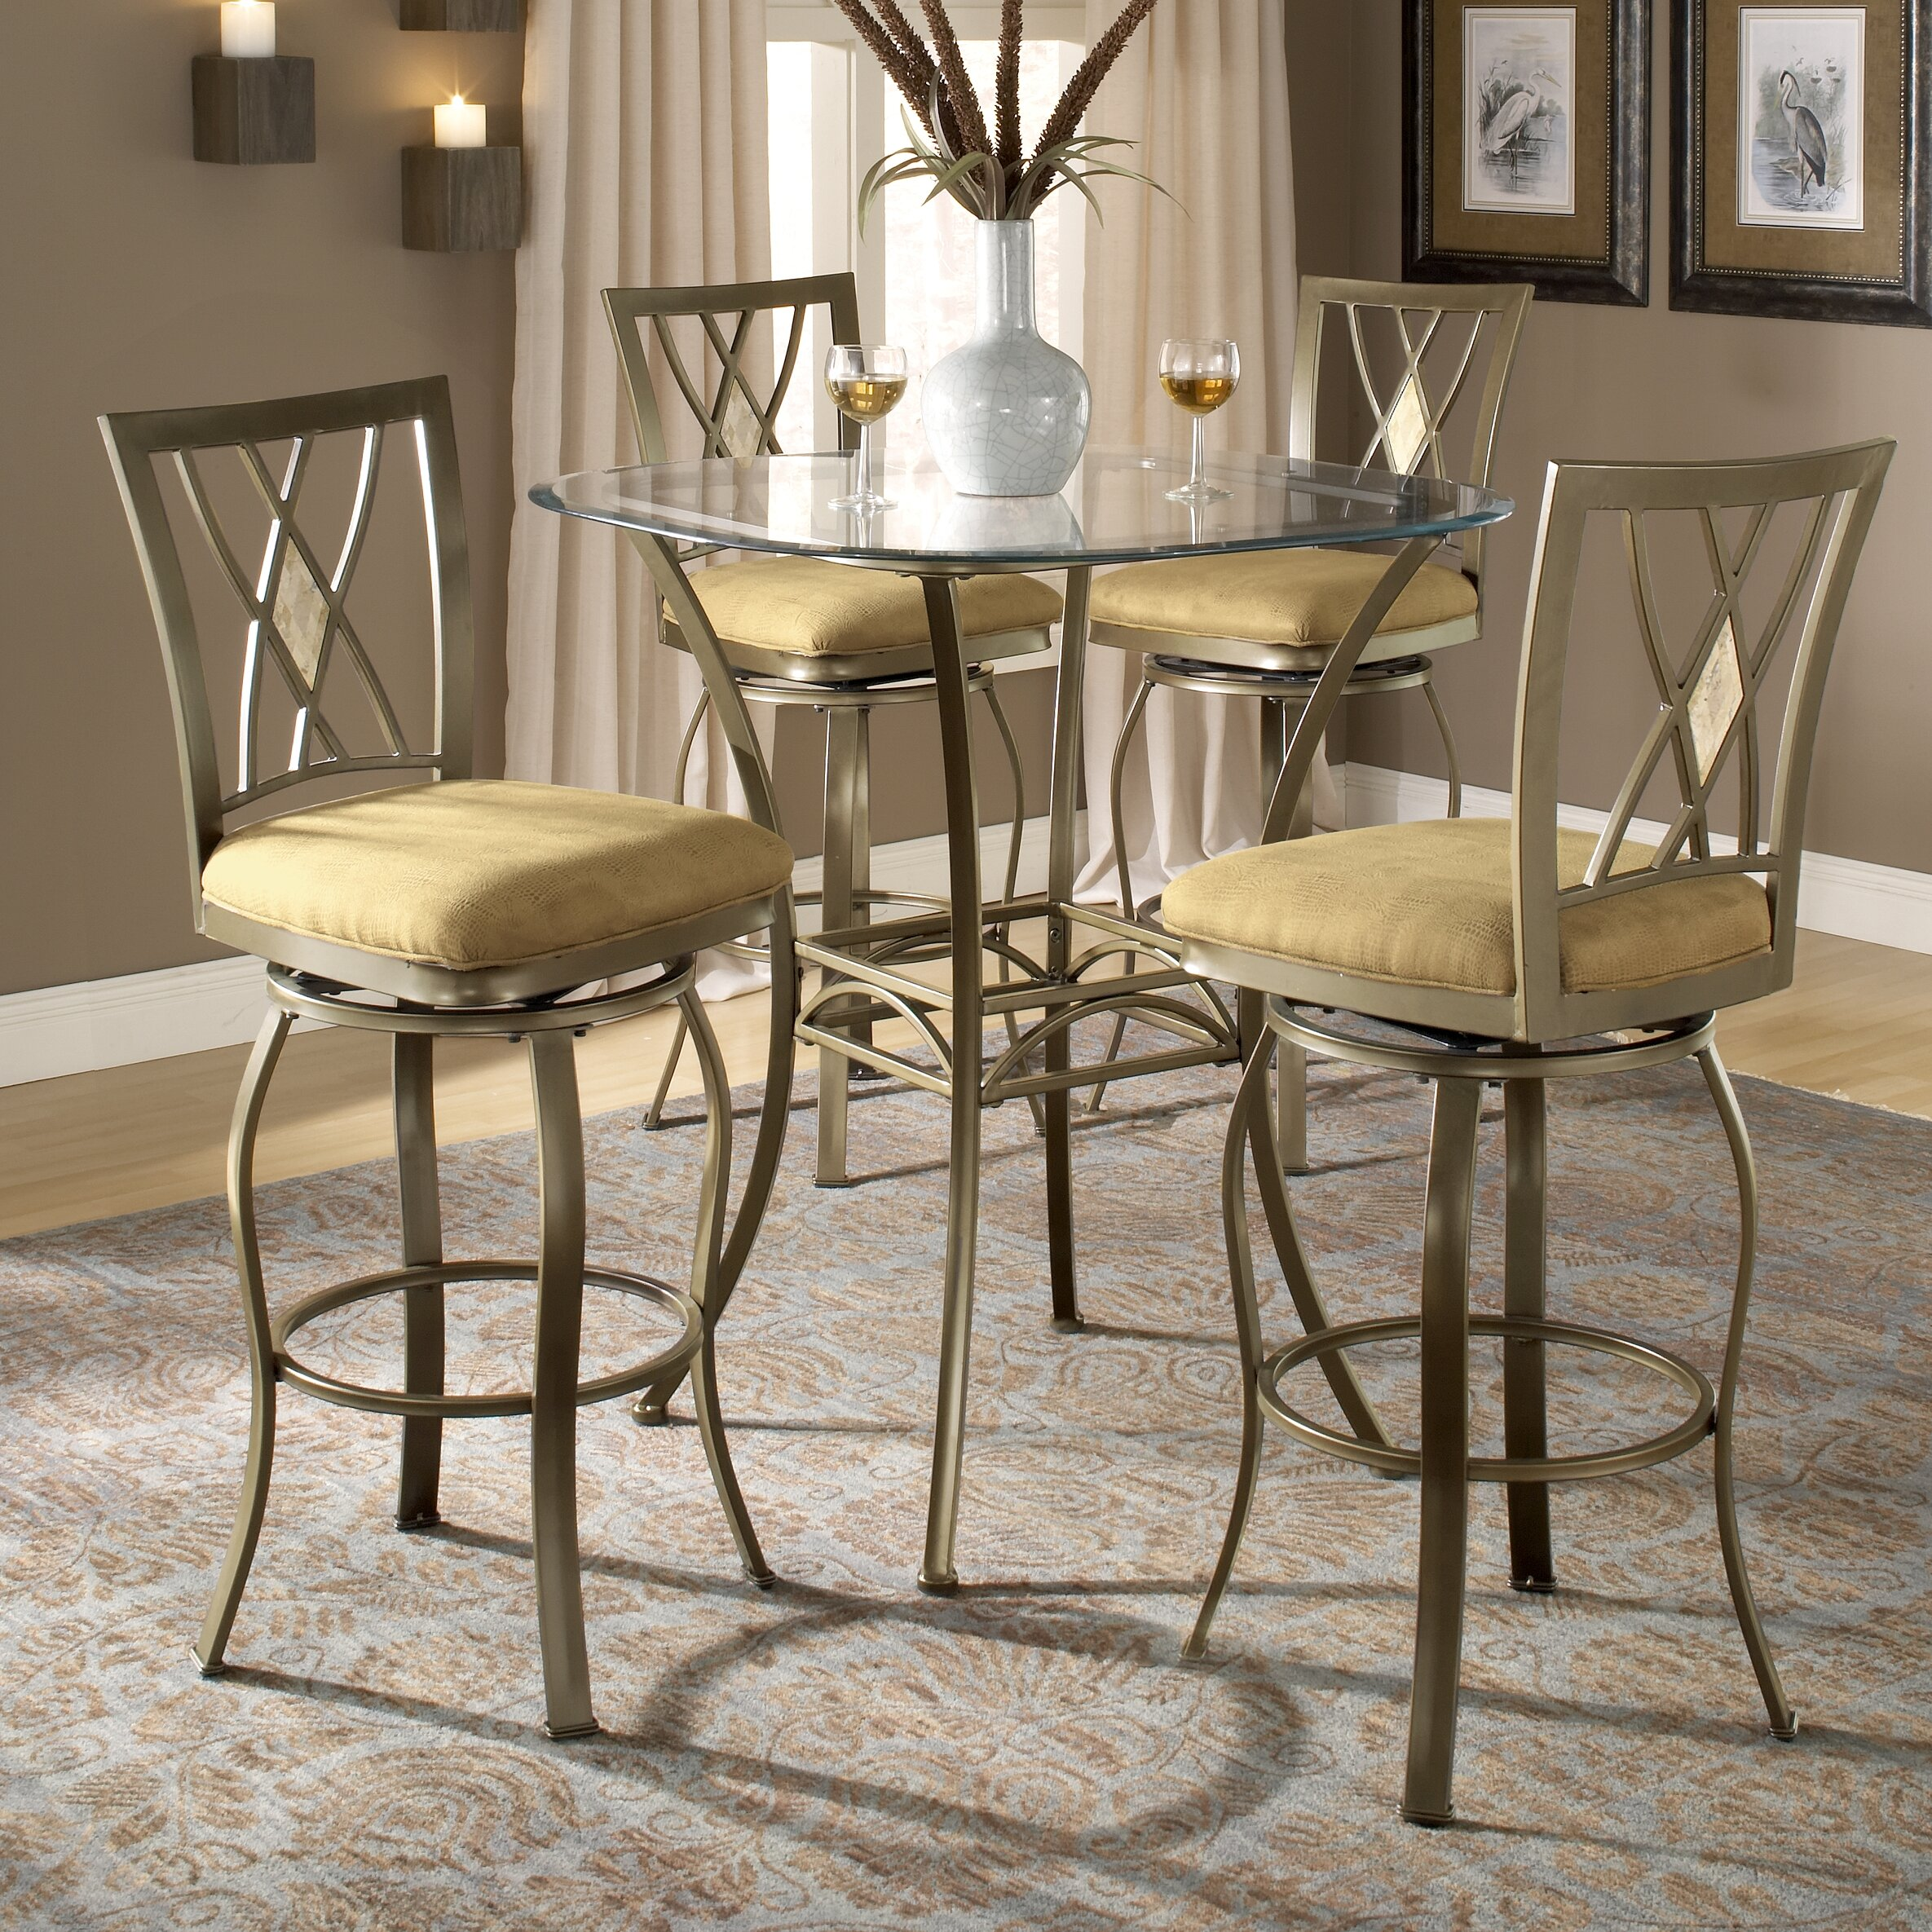 Darby Home Co Dallas Bar Height Bistro Table Set Reviews Wayfair